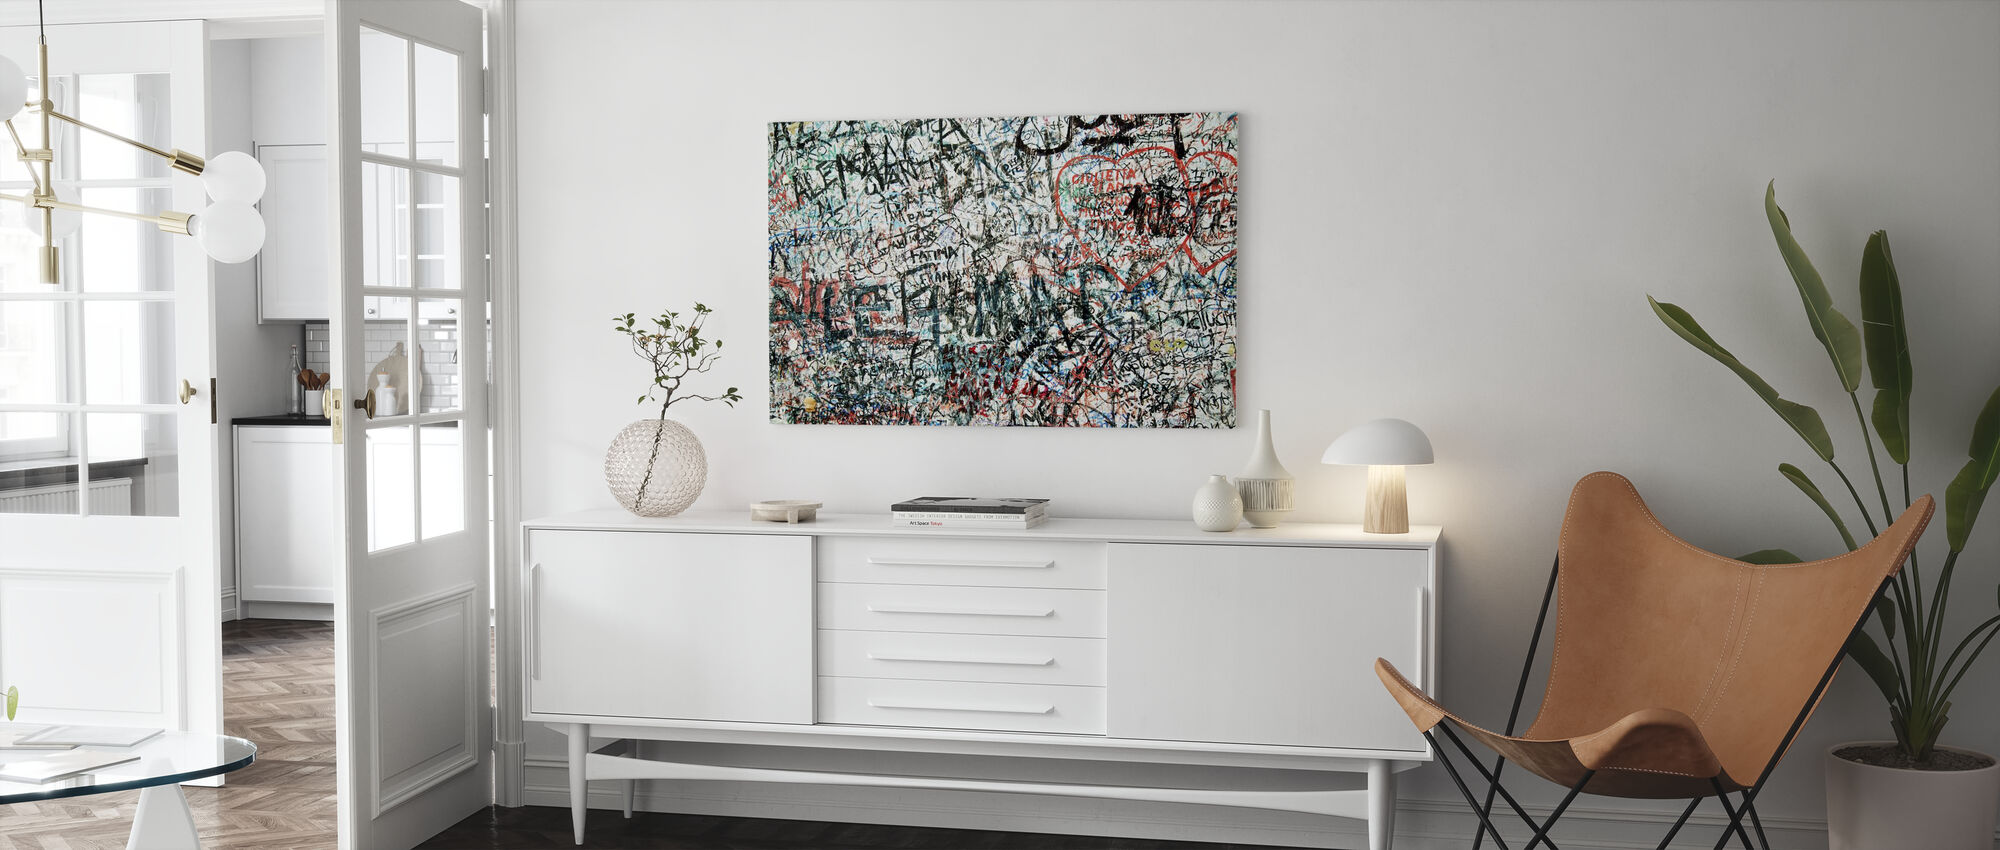 Lovers Wall - Canvas print - Living Room